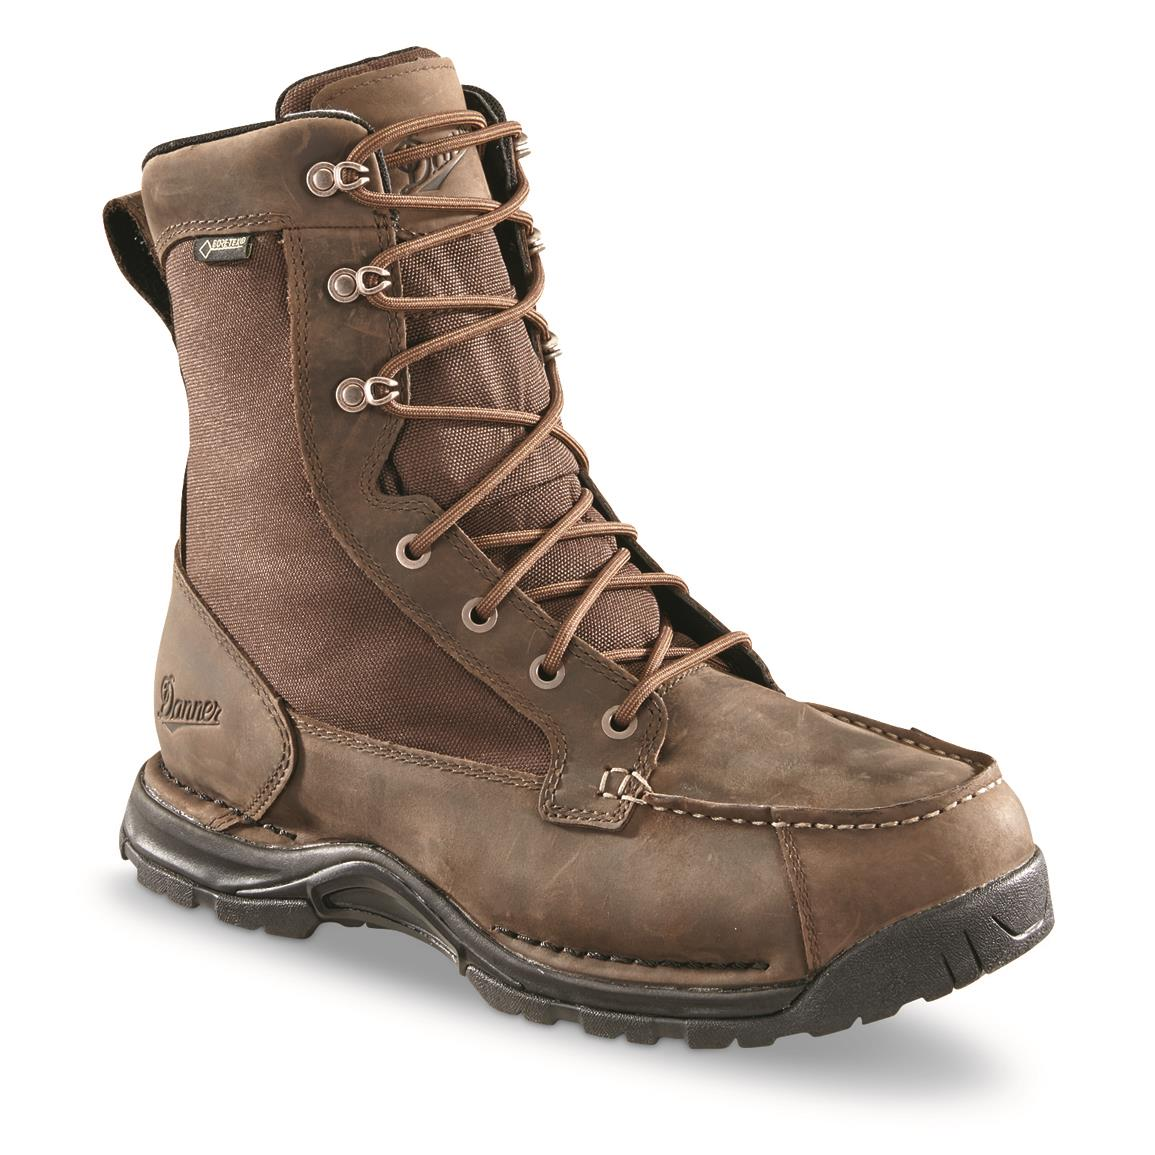 "Danner Men's Sharptail 8"" Lace Up Waterproof Hunting Boots, Brown"